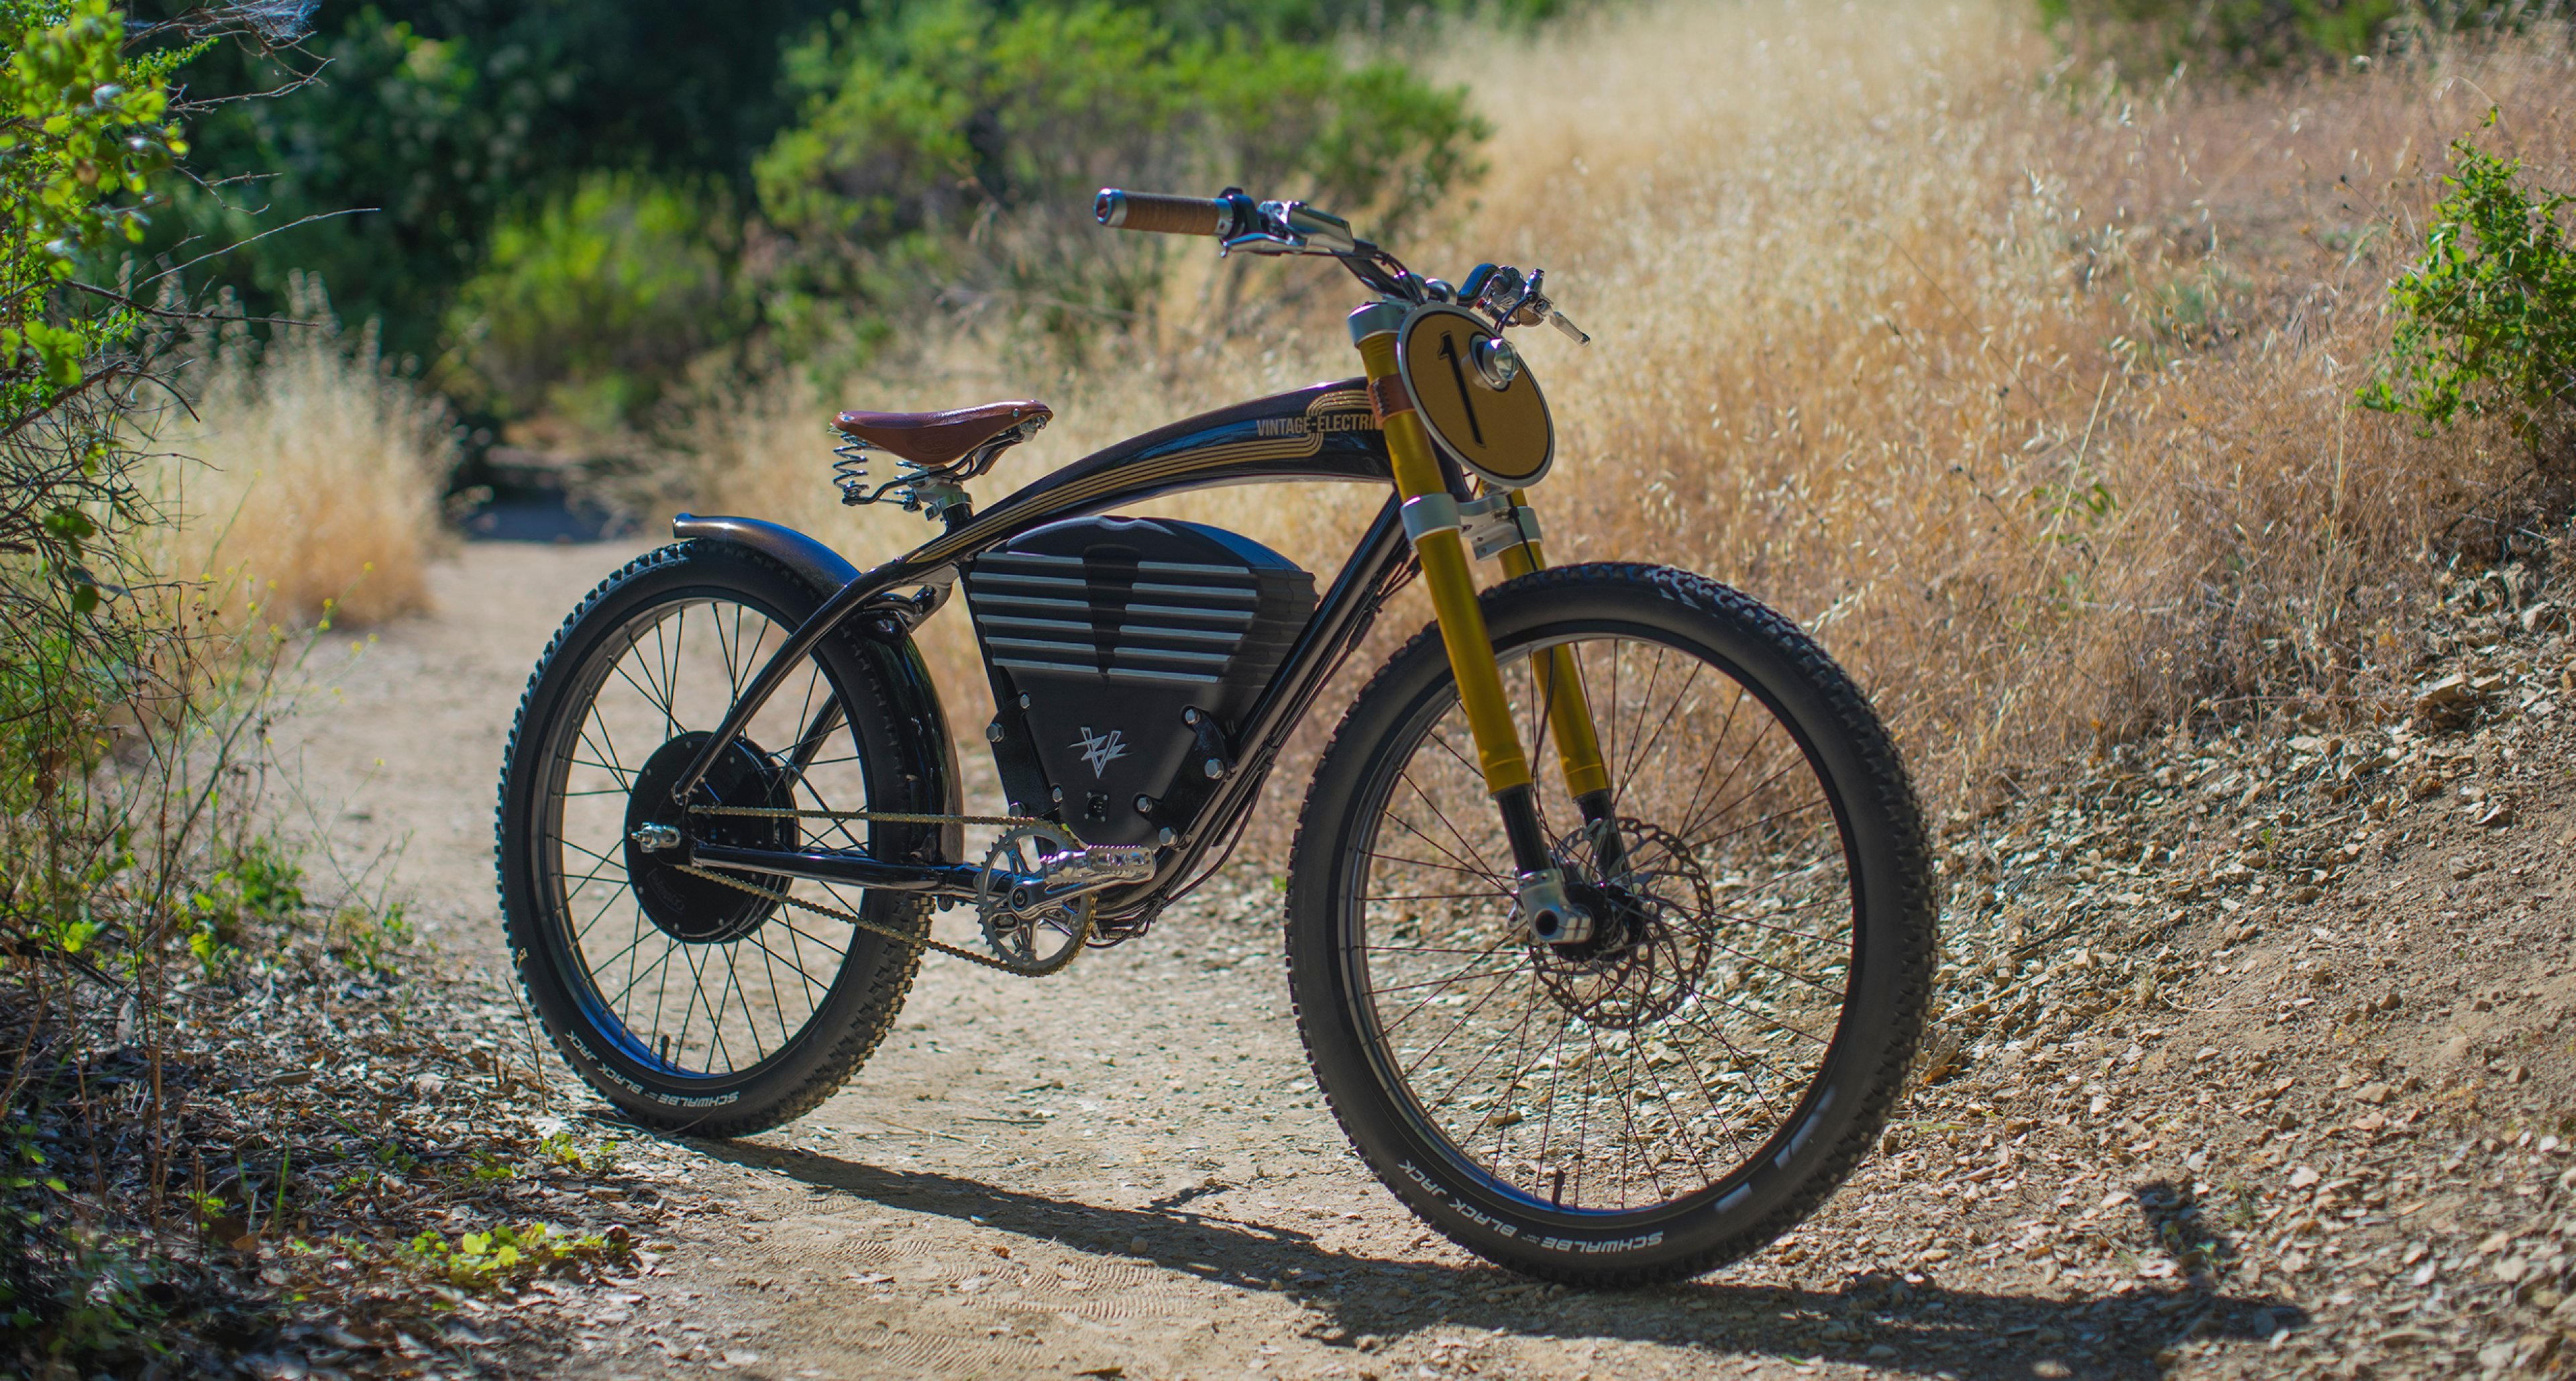 https://www.classicdriver.com/sites/default/files/styles/full_width_slider/public/article_images/vintage-electric-scrambler-06.jpg